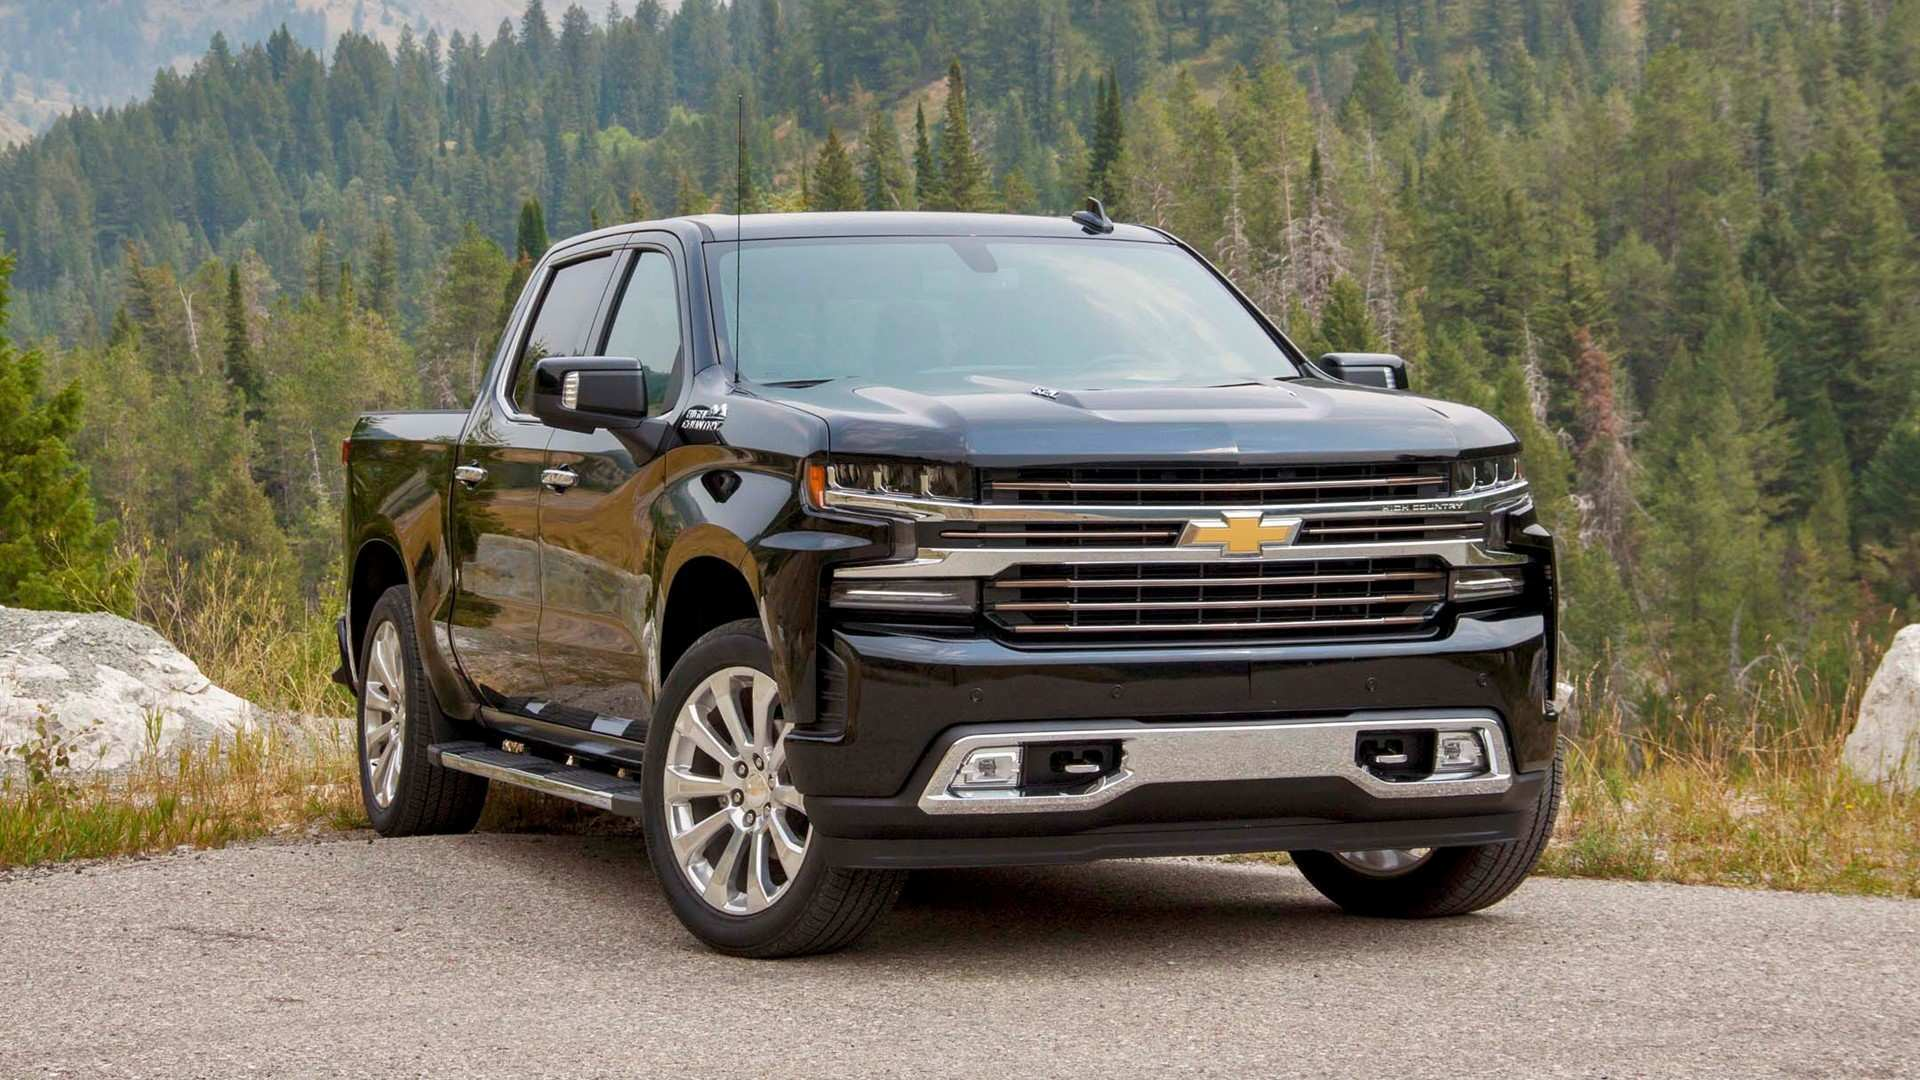 45 All New 2019 Chevrolet 1500 Exterior and Interior with 2019 Chevrolet 1500